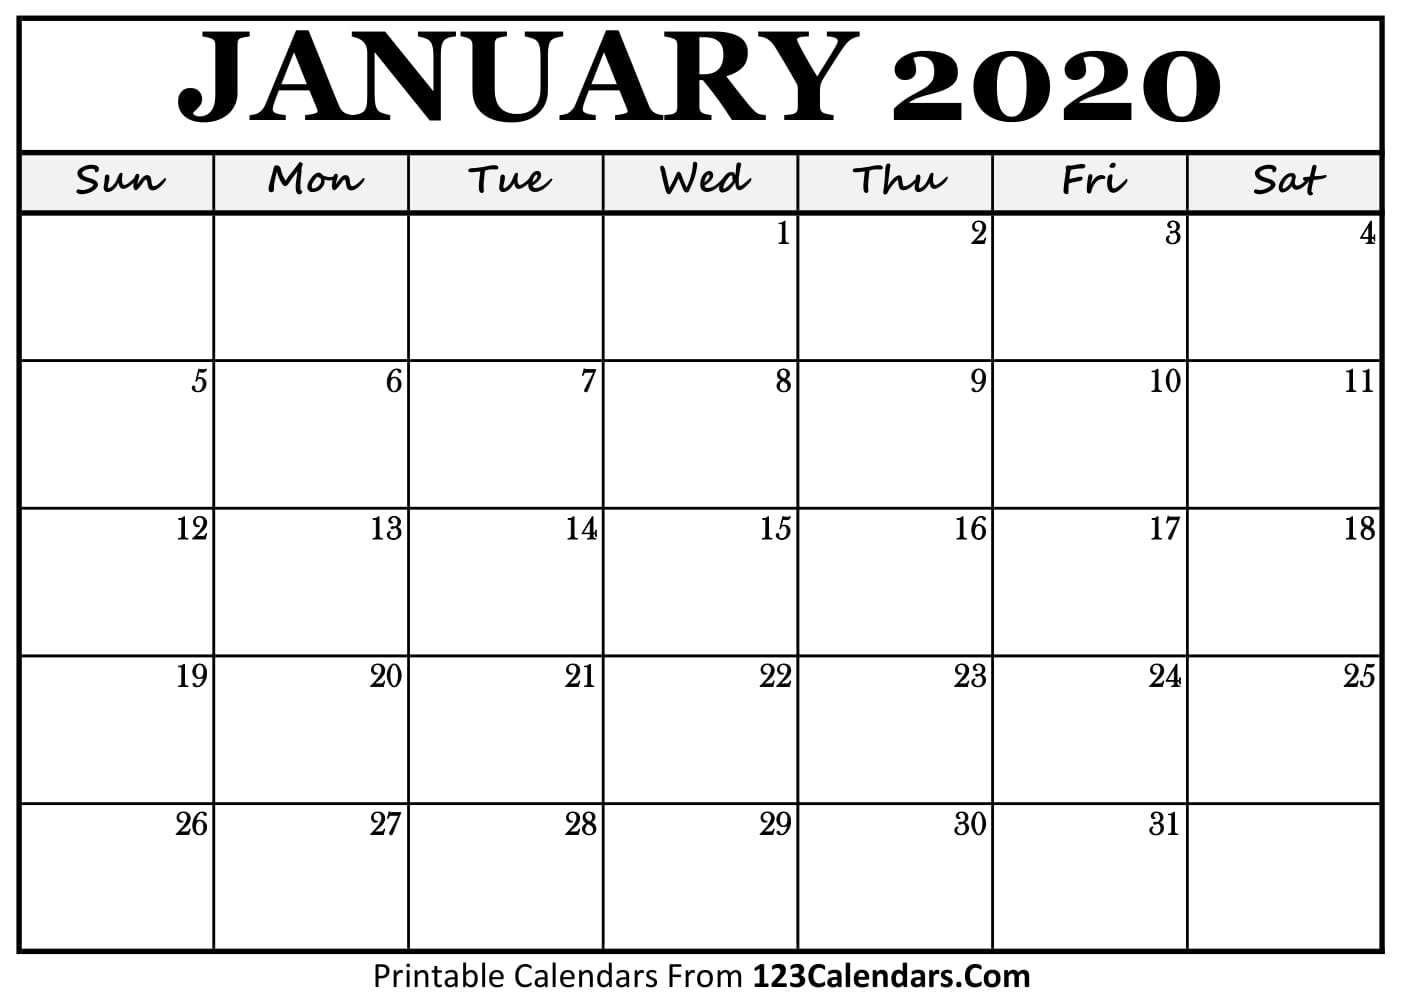 Free Printable Calendar | 123Calendars for 2020 Fill In Calendar Fill In